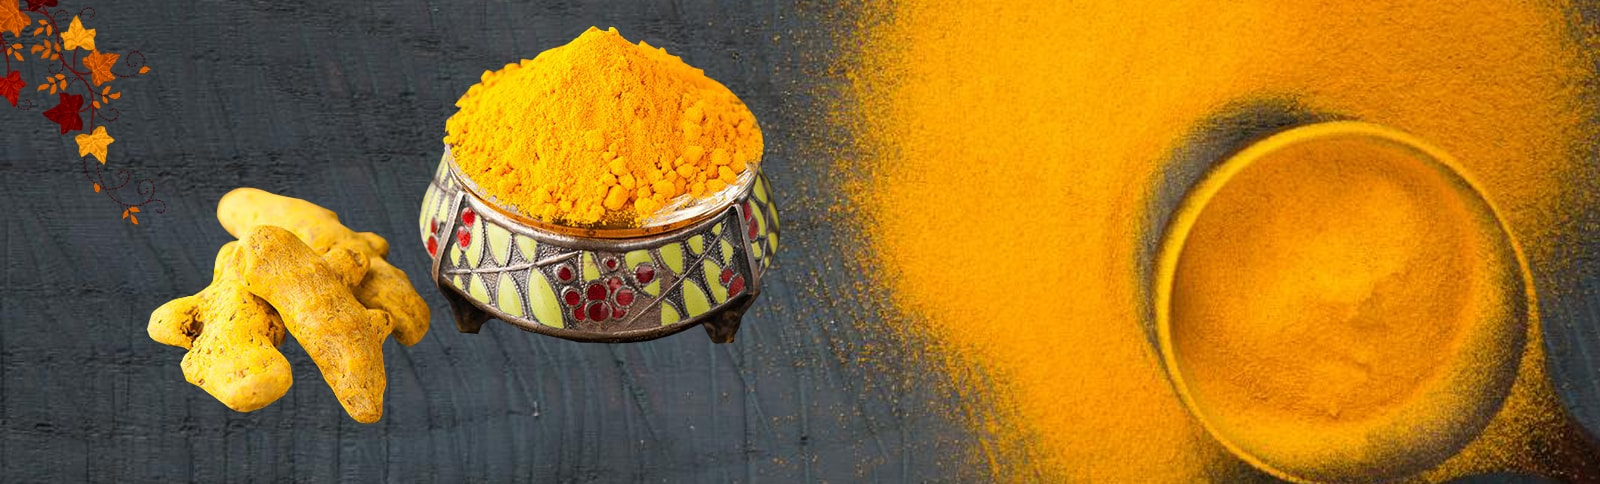 active compound curcumin have many scientifically-proven health benefits